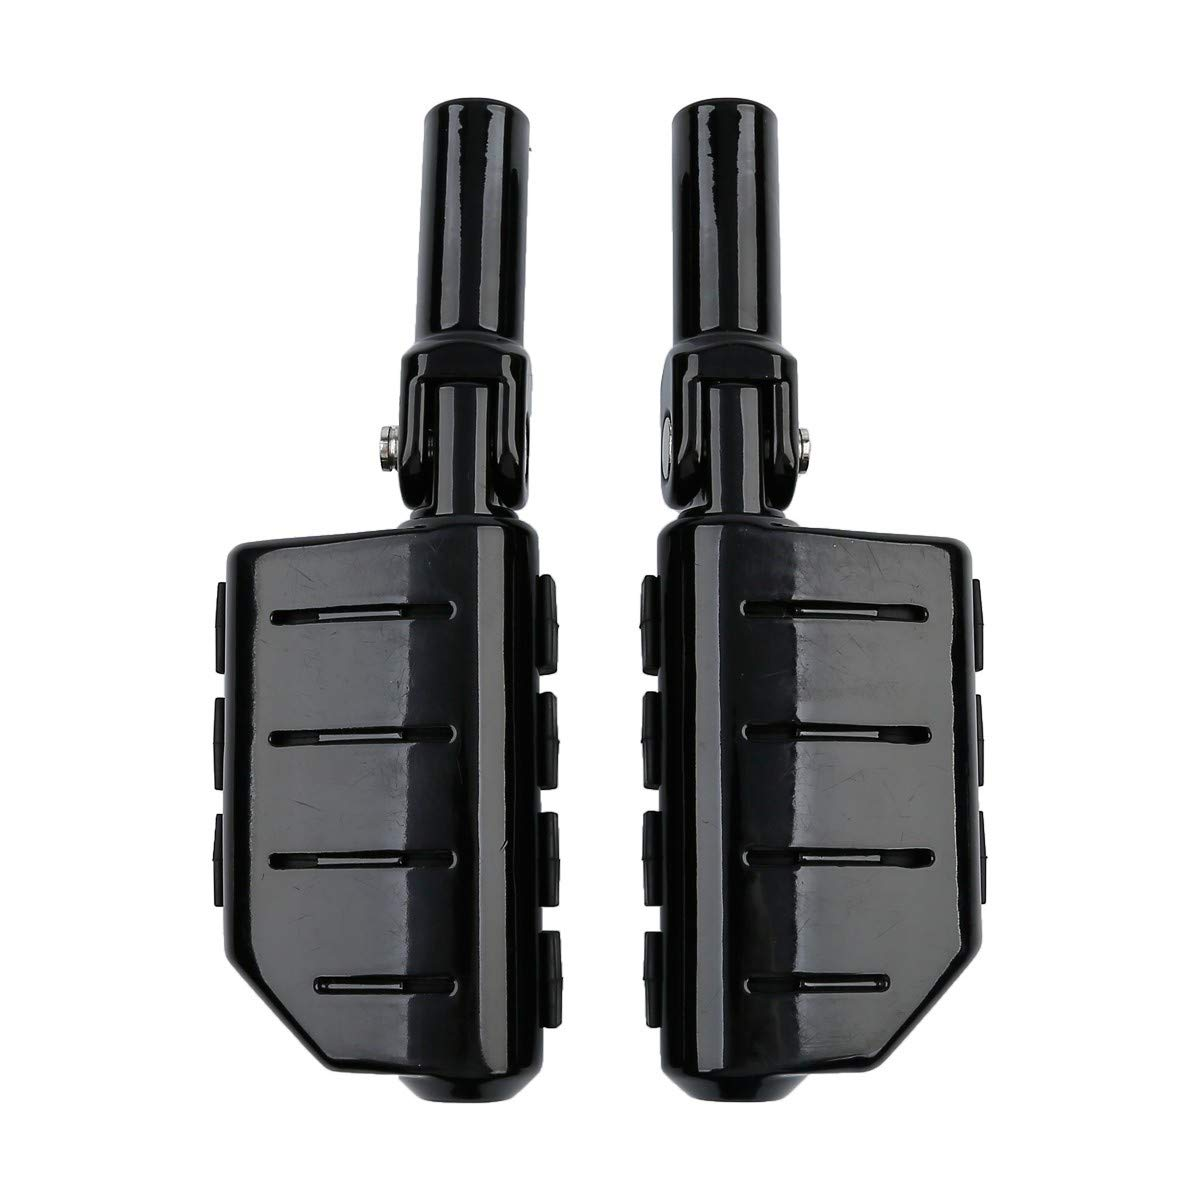 XFMT Motorcycle Foot Pegs Footrests For Harley Softail Slim FLS 2012-2017 2016 Replaces Harley Davidson part 50932-08